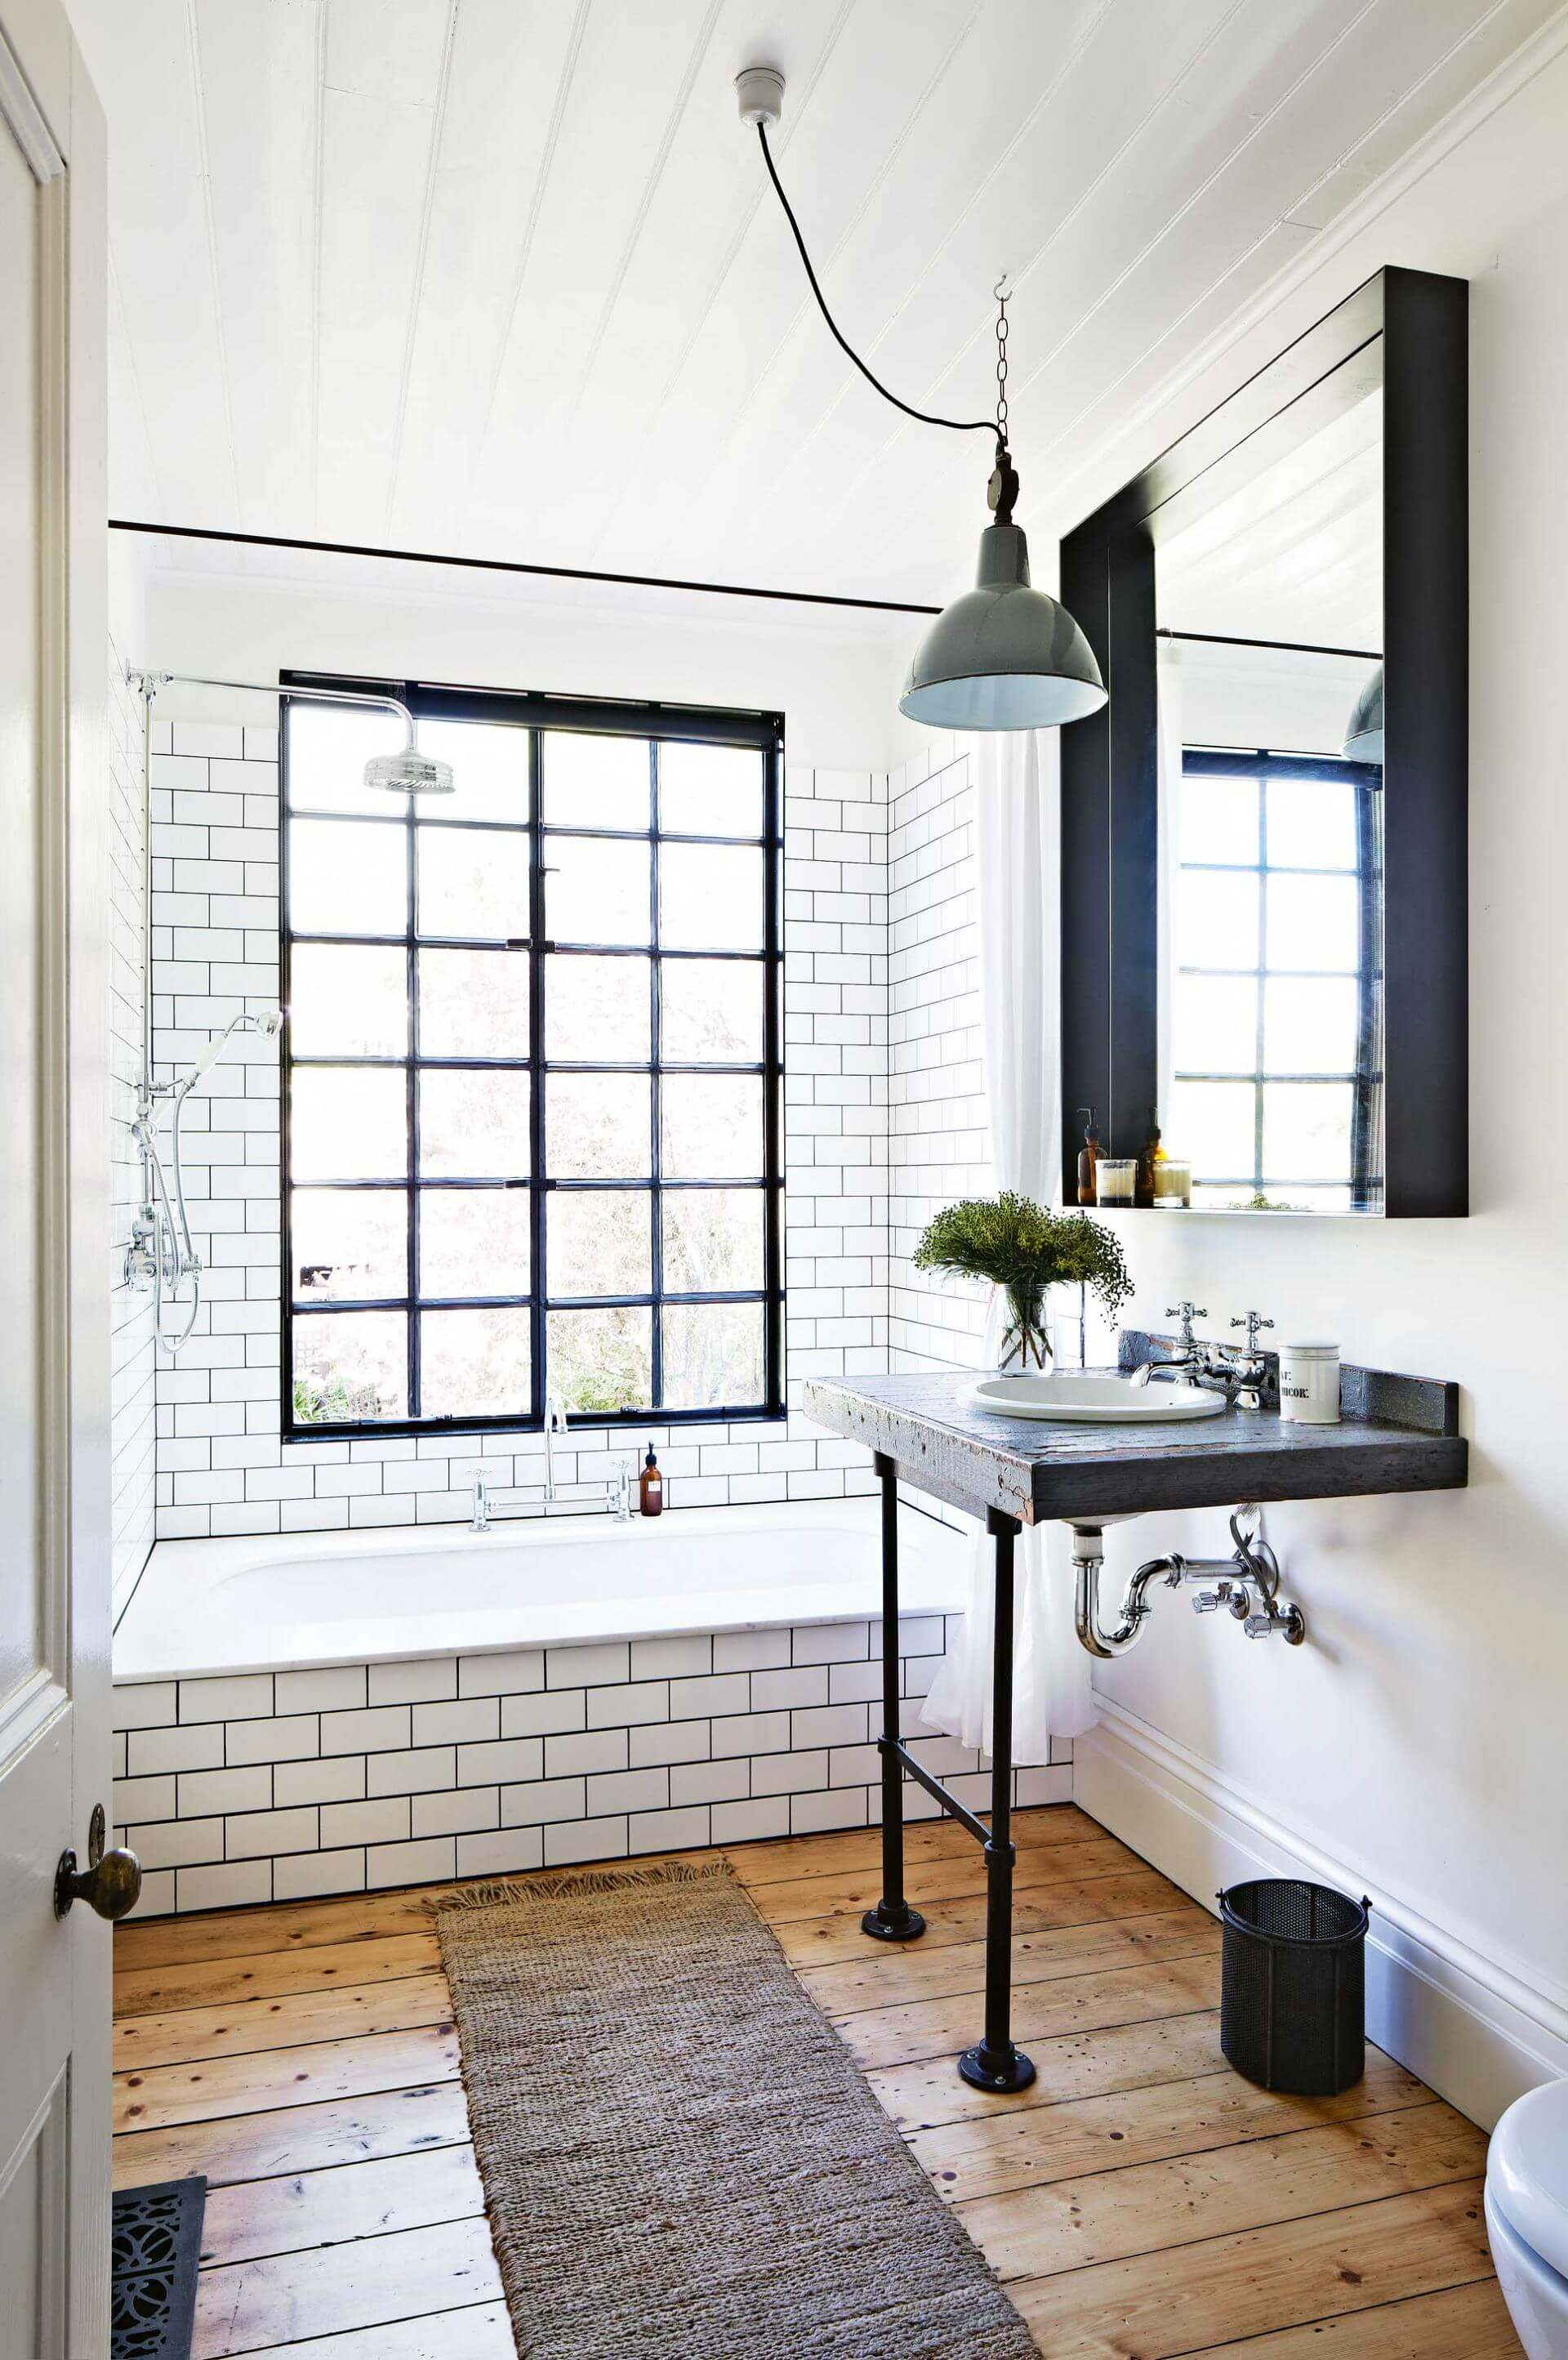 11 Stunning Industrial Bathroom Ideas